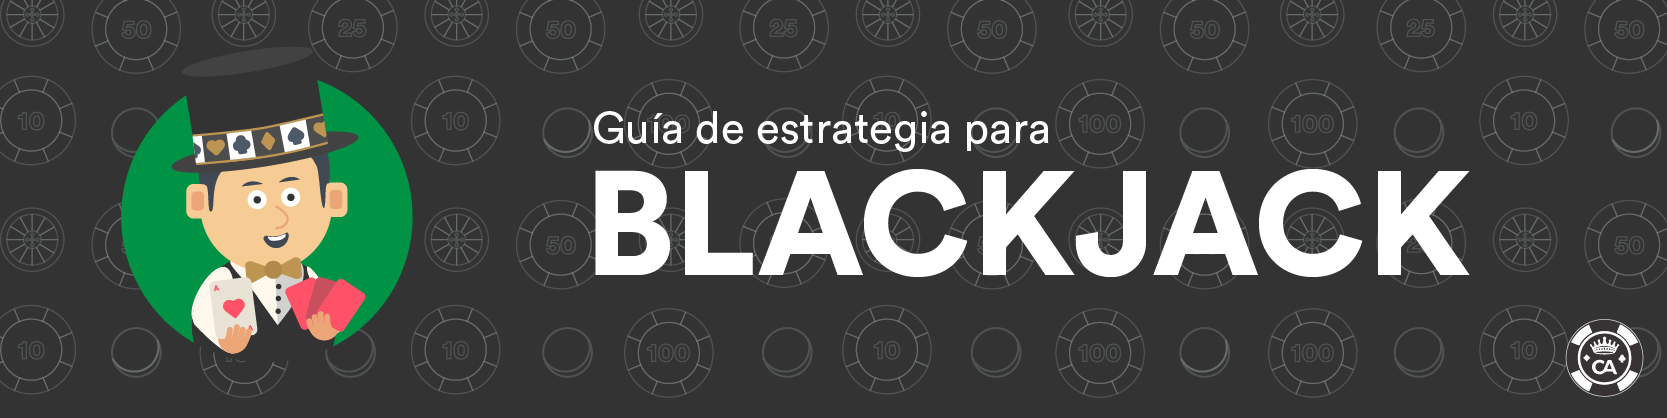 Estrategia Blackjack